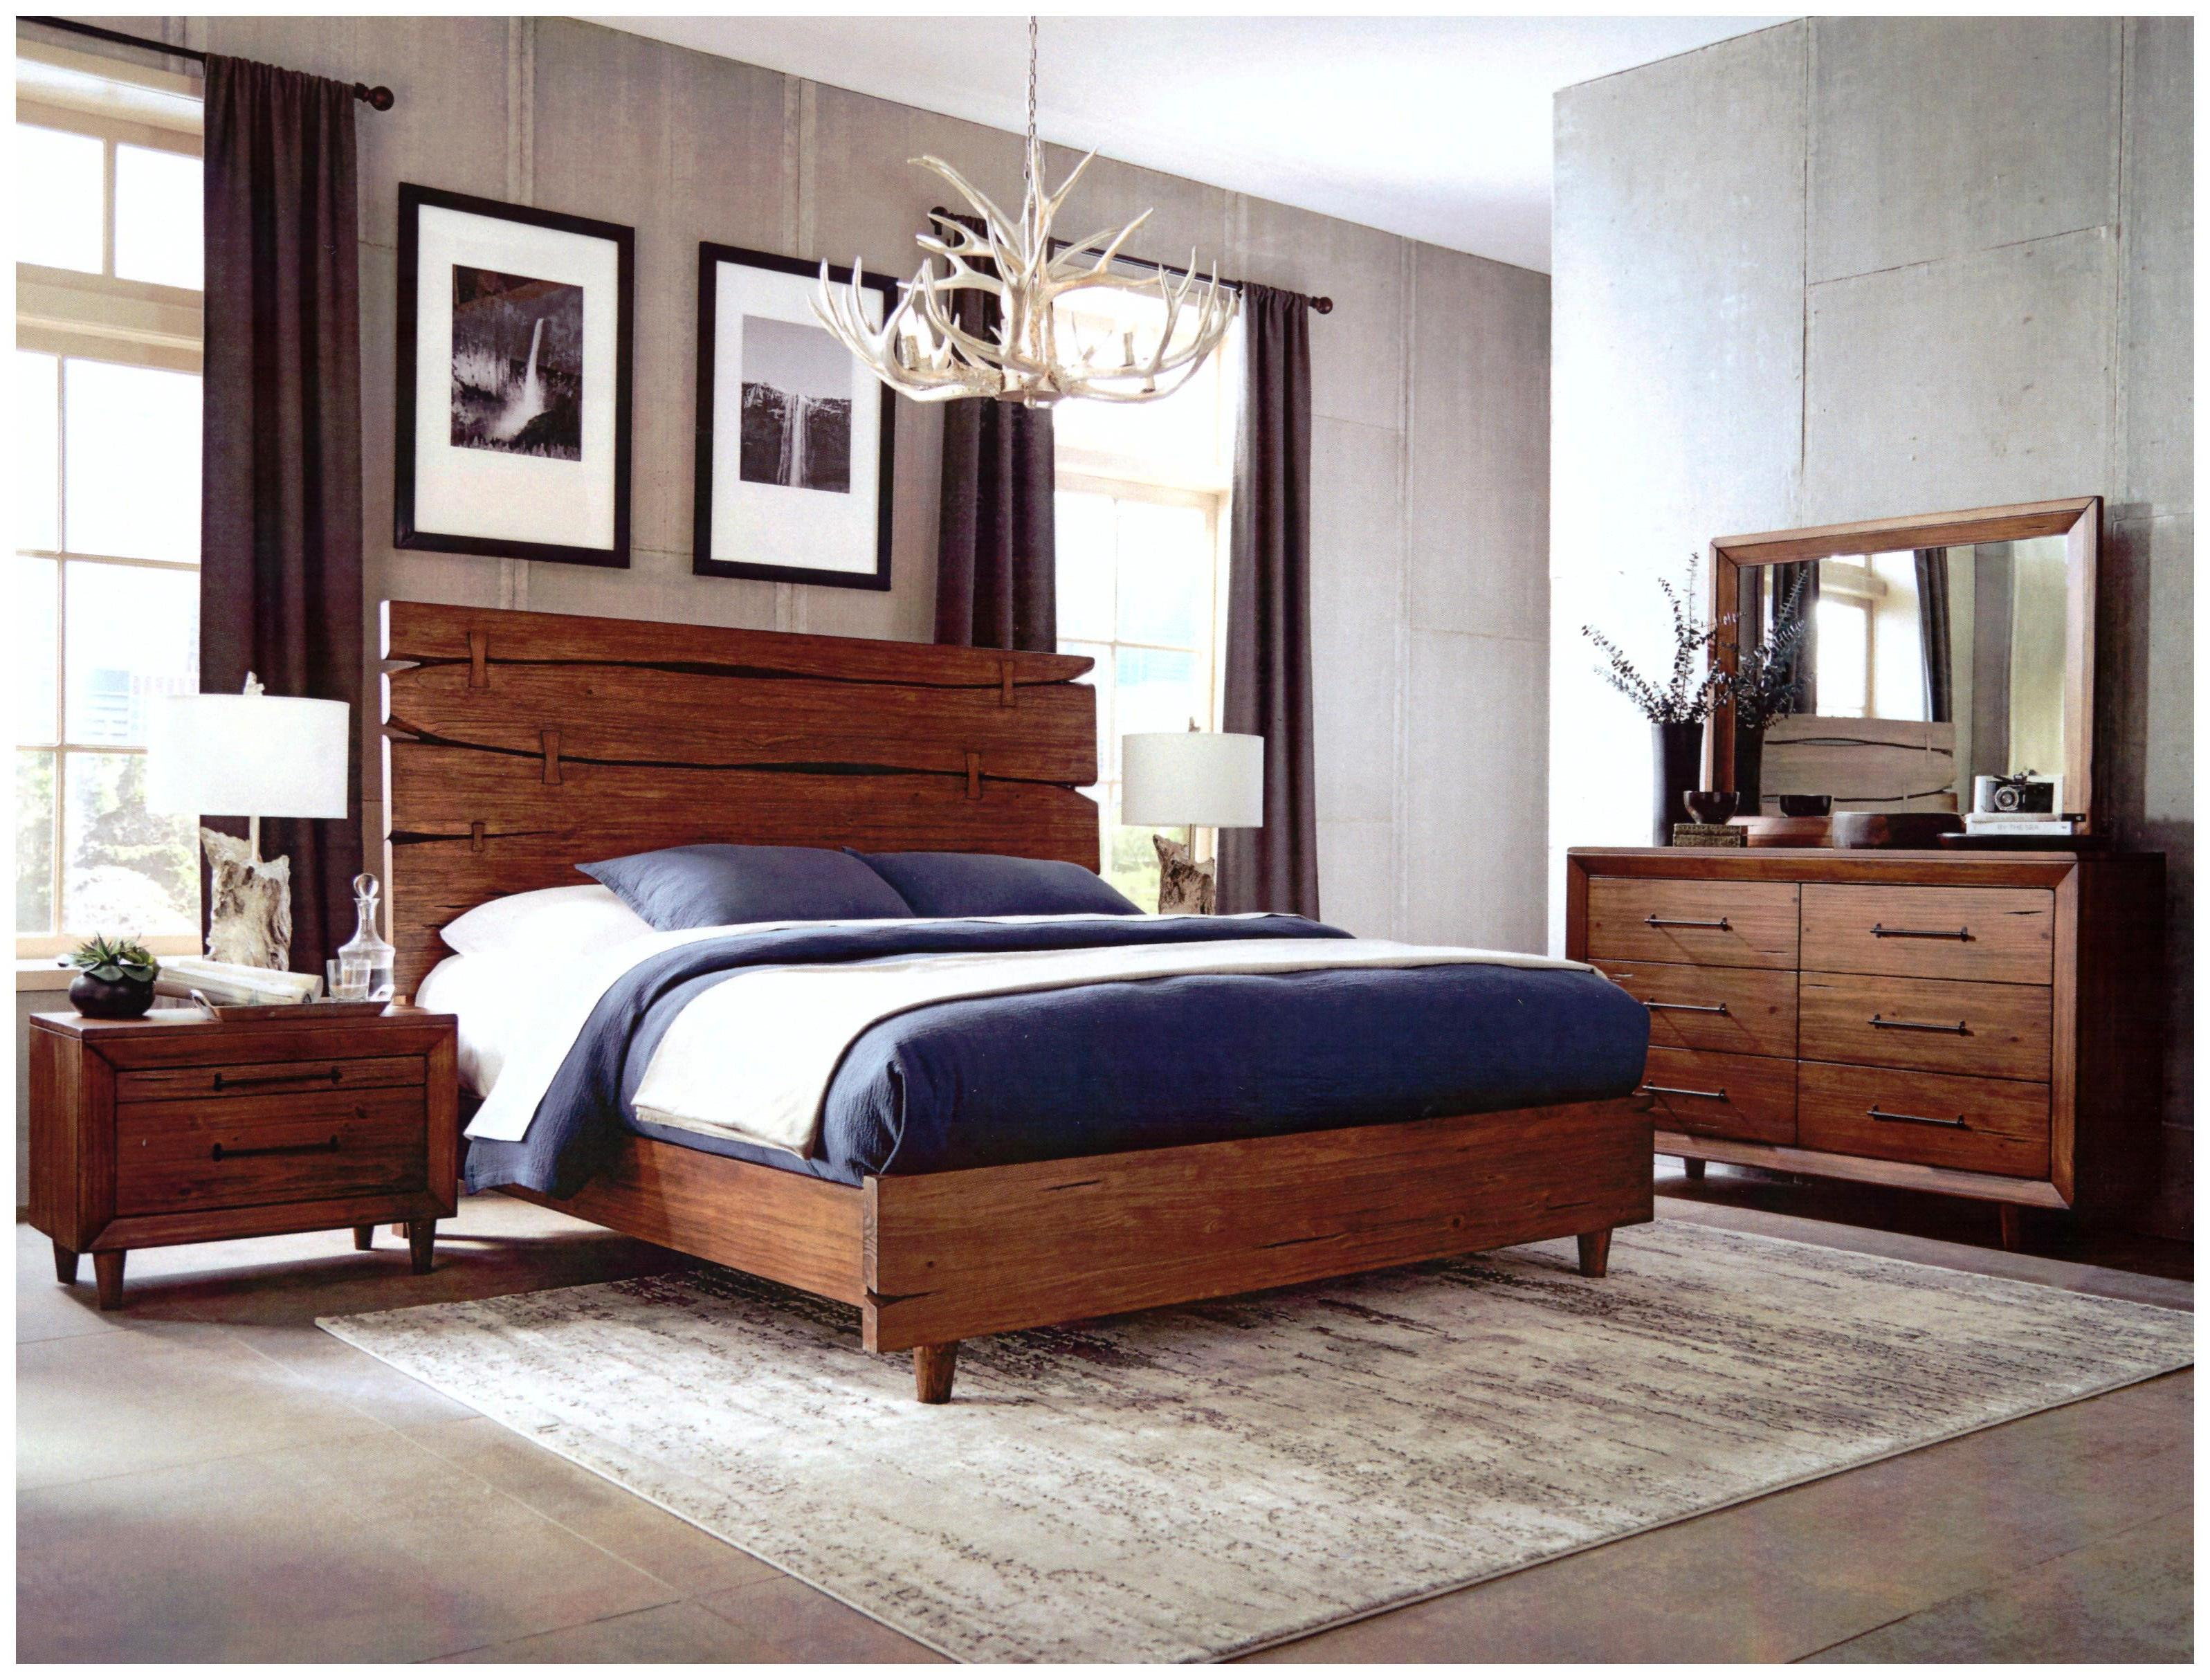 Rustic Live Edge Bedroom